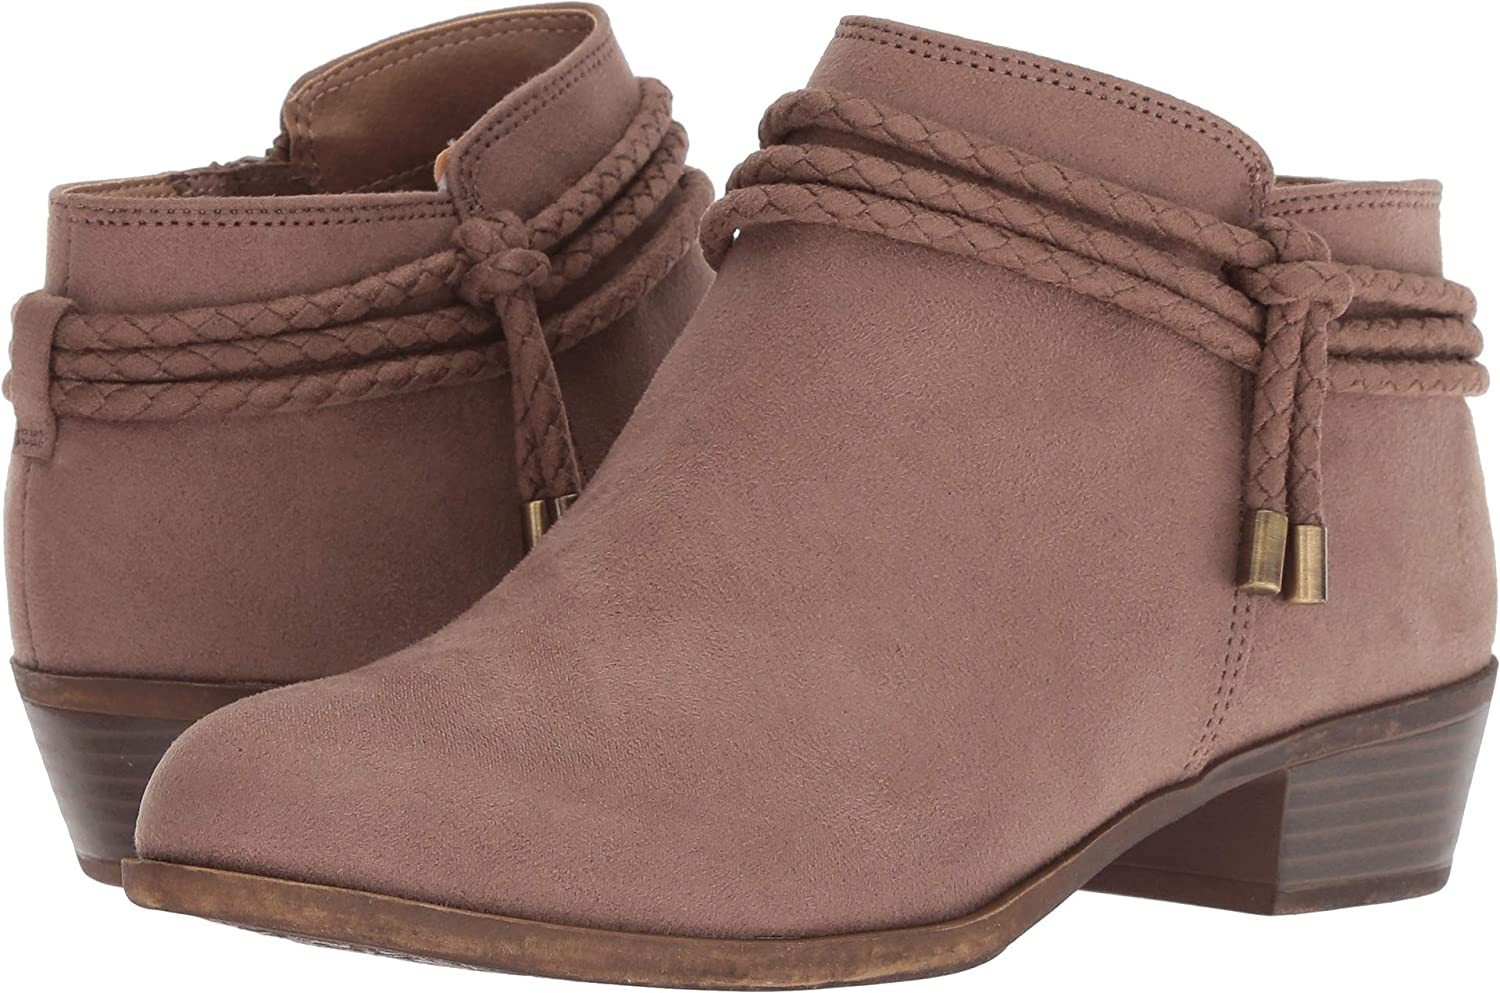 LifeStride Womens Andrea Ankle & Bootie